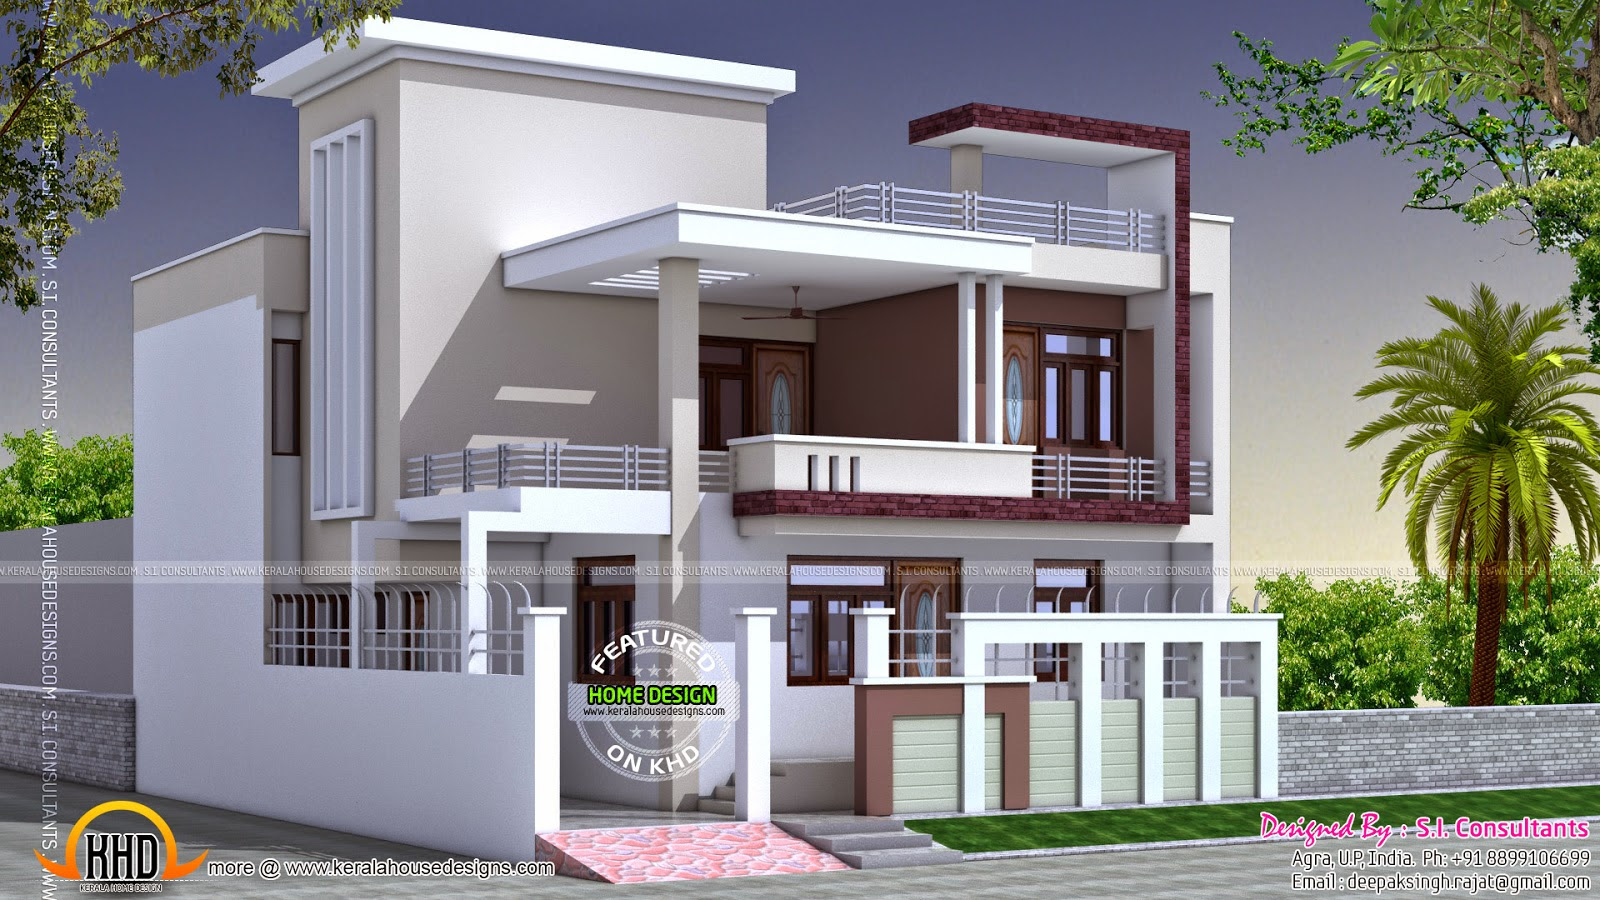 Fancy Home Architecture News And Article Online North Indian Square Roof In Indian Home Exterior Pictures Low Budget Ideas House Generation